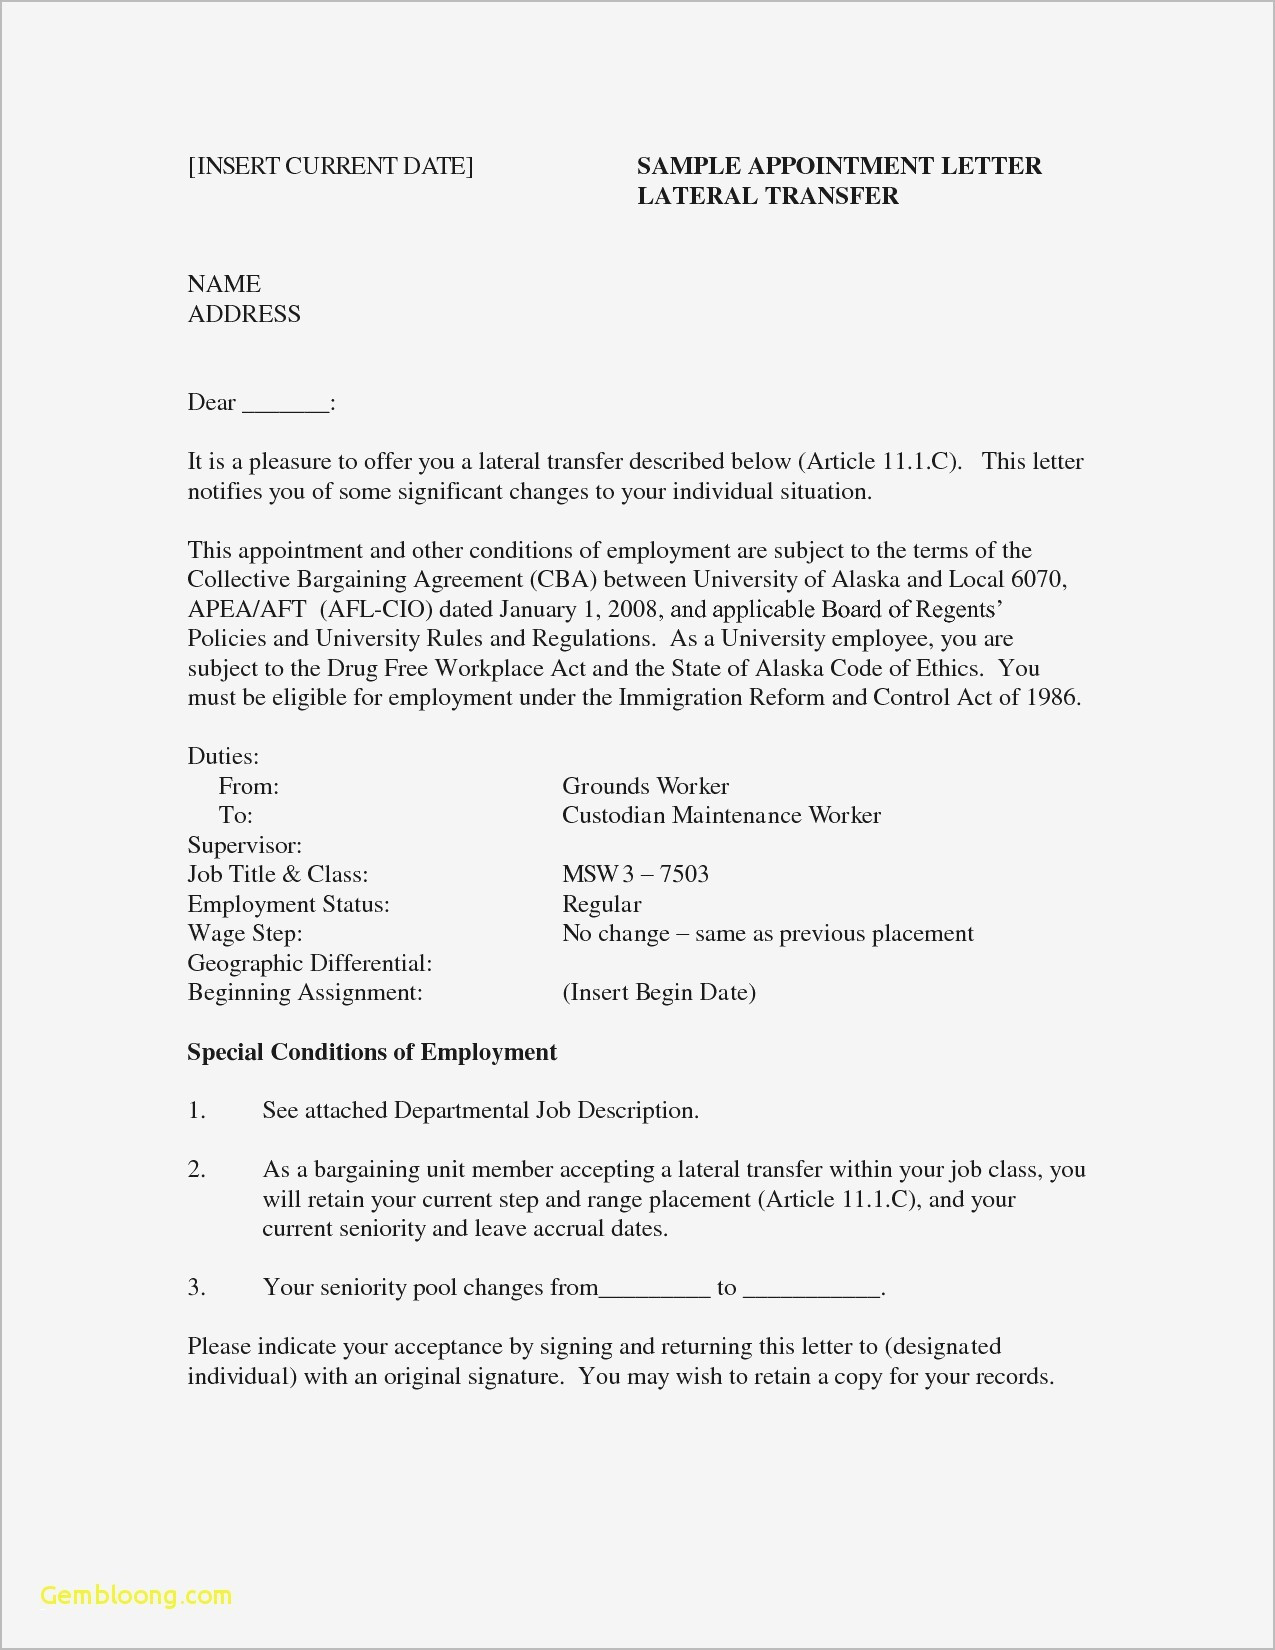 Resume Template for Actors - Sample Chronological Resume format Free Downloads Best Actor